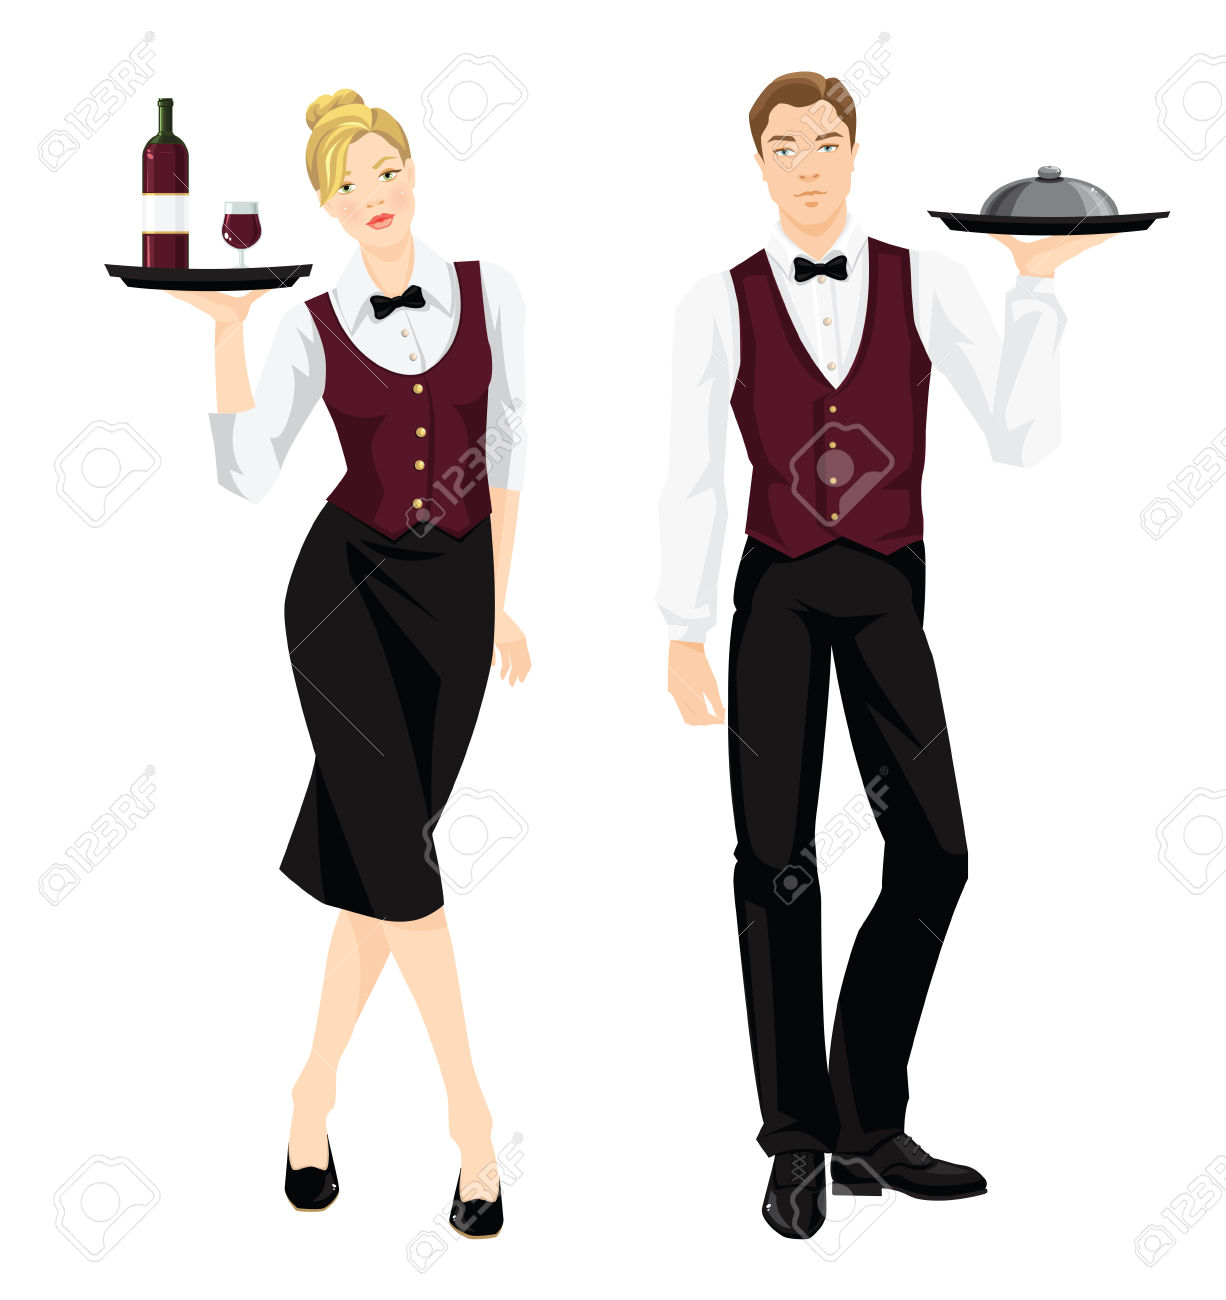 56479312-vector-illustration-of-waiter-and-waitress-in-formal-clothes-isolated-on-white-background-stock-vector